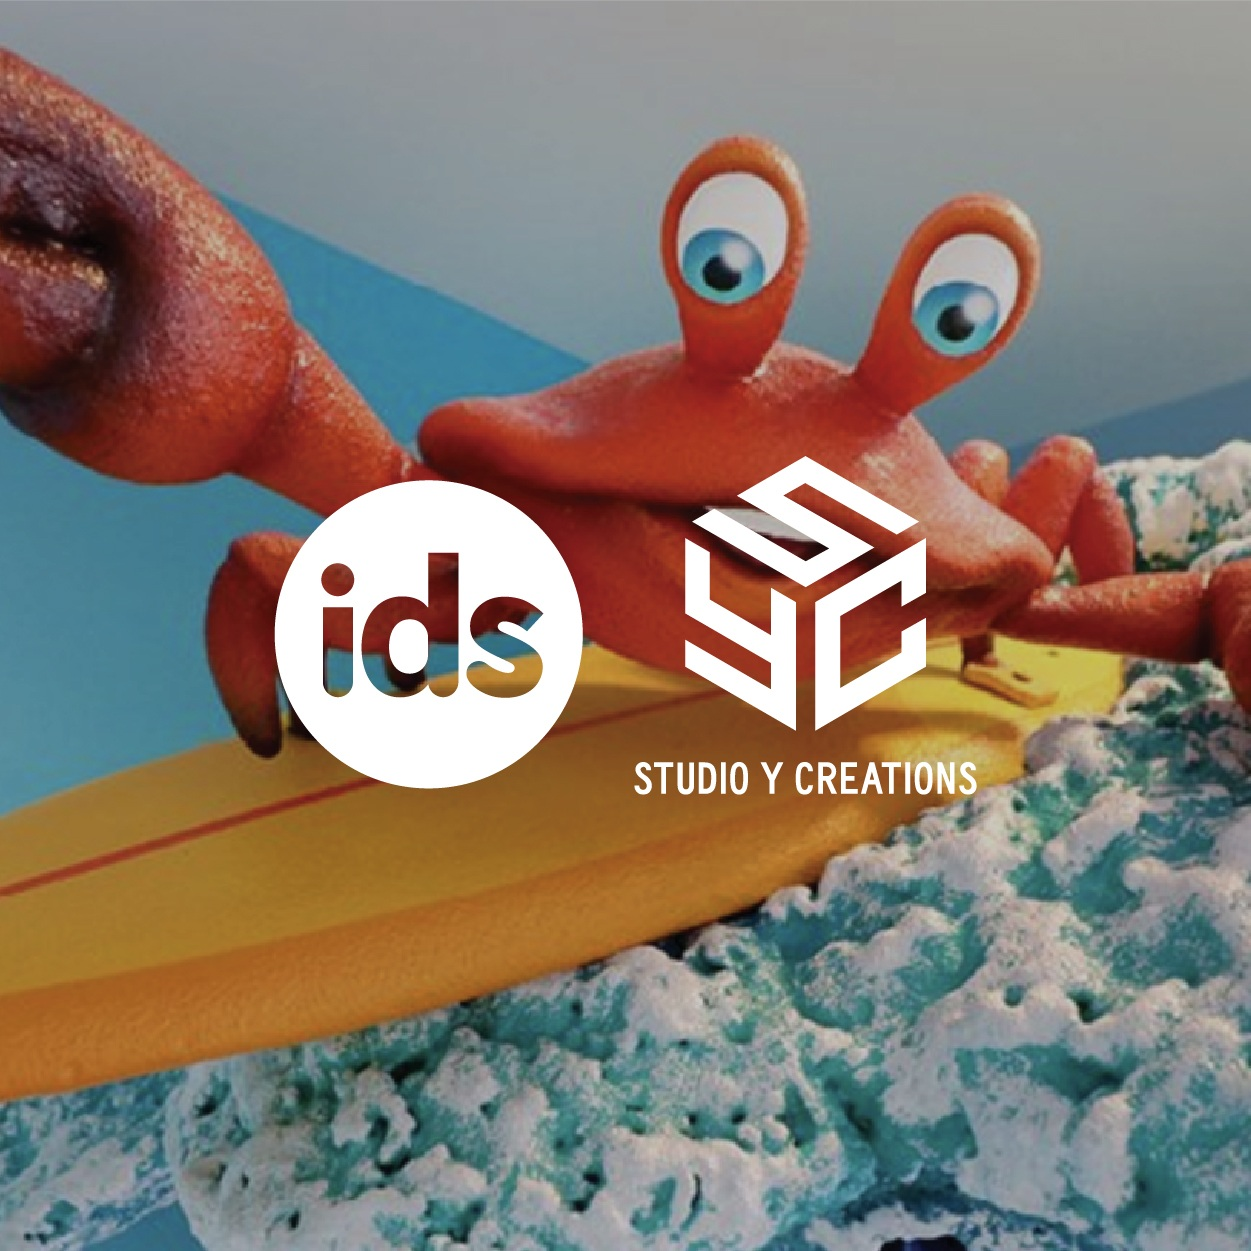 <p><strong>Studio Y/IDS</strong></p>